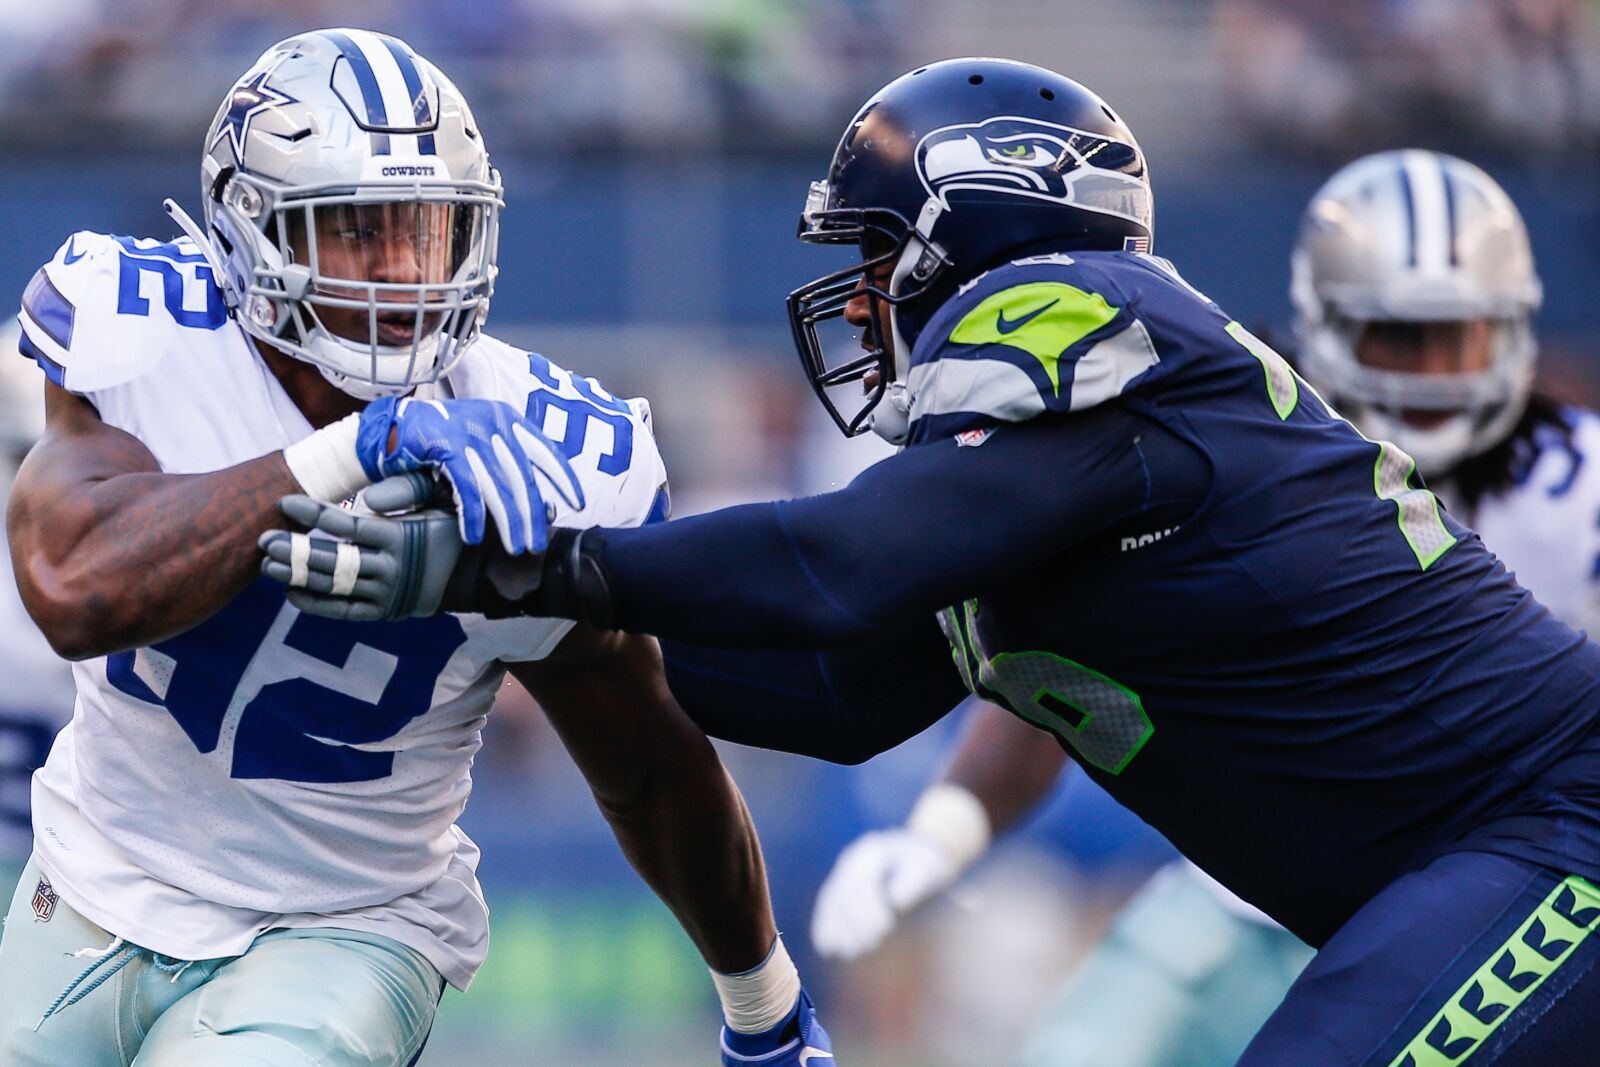 Dallas Cowboys: OTA injuries should provide needed growth